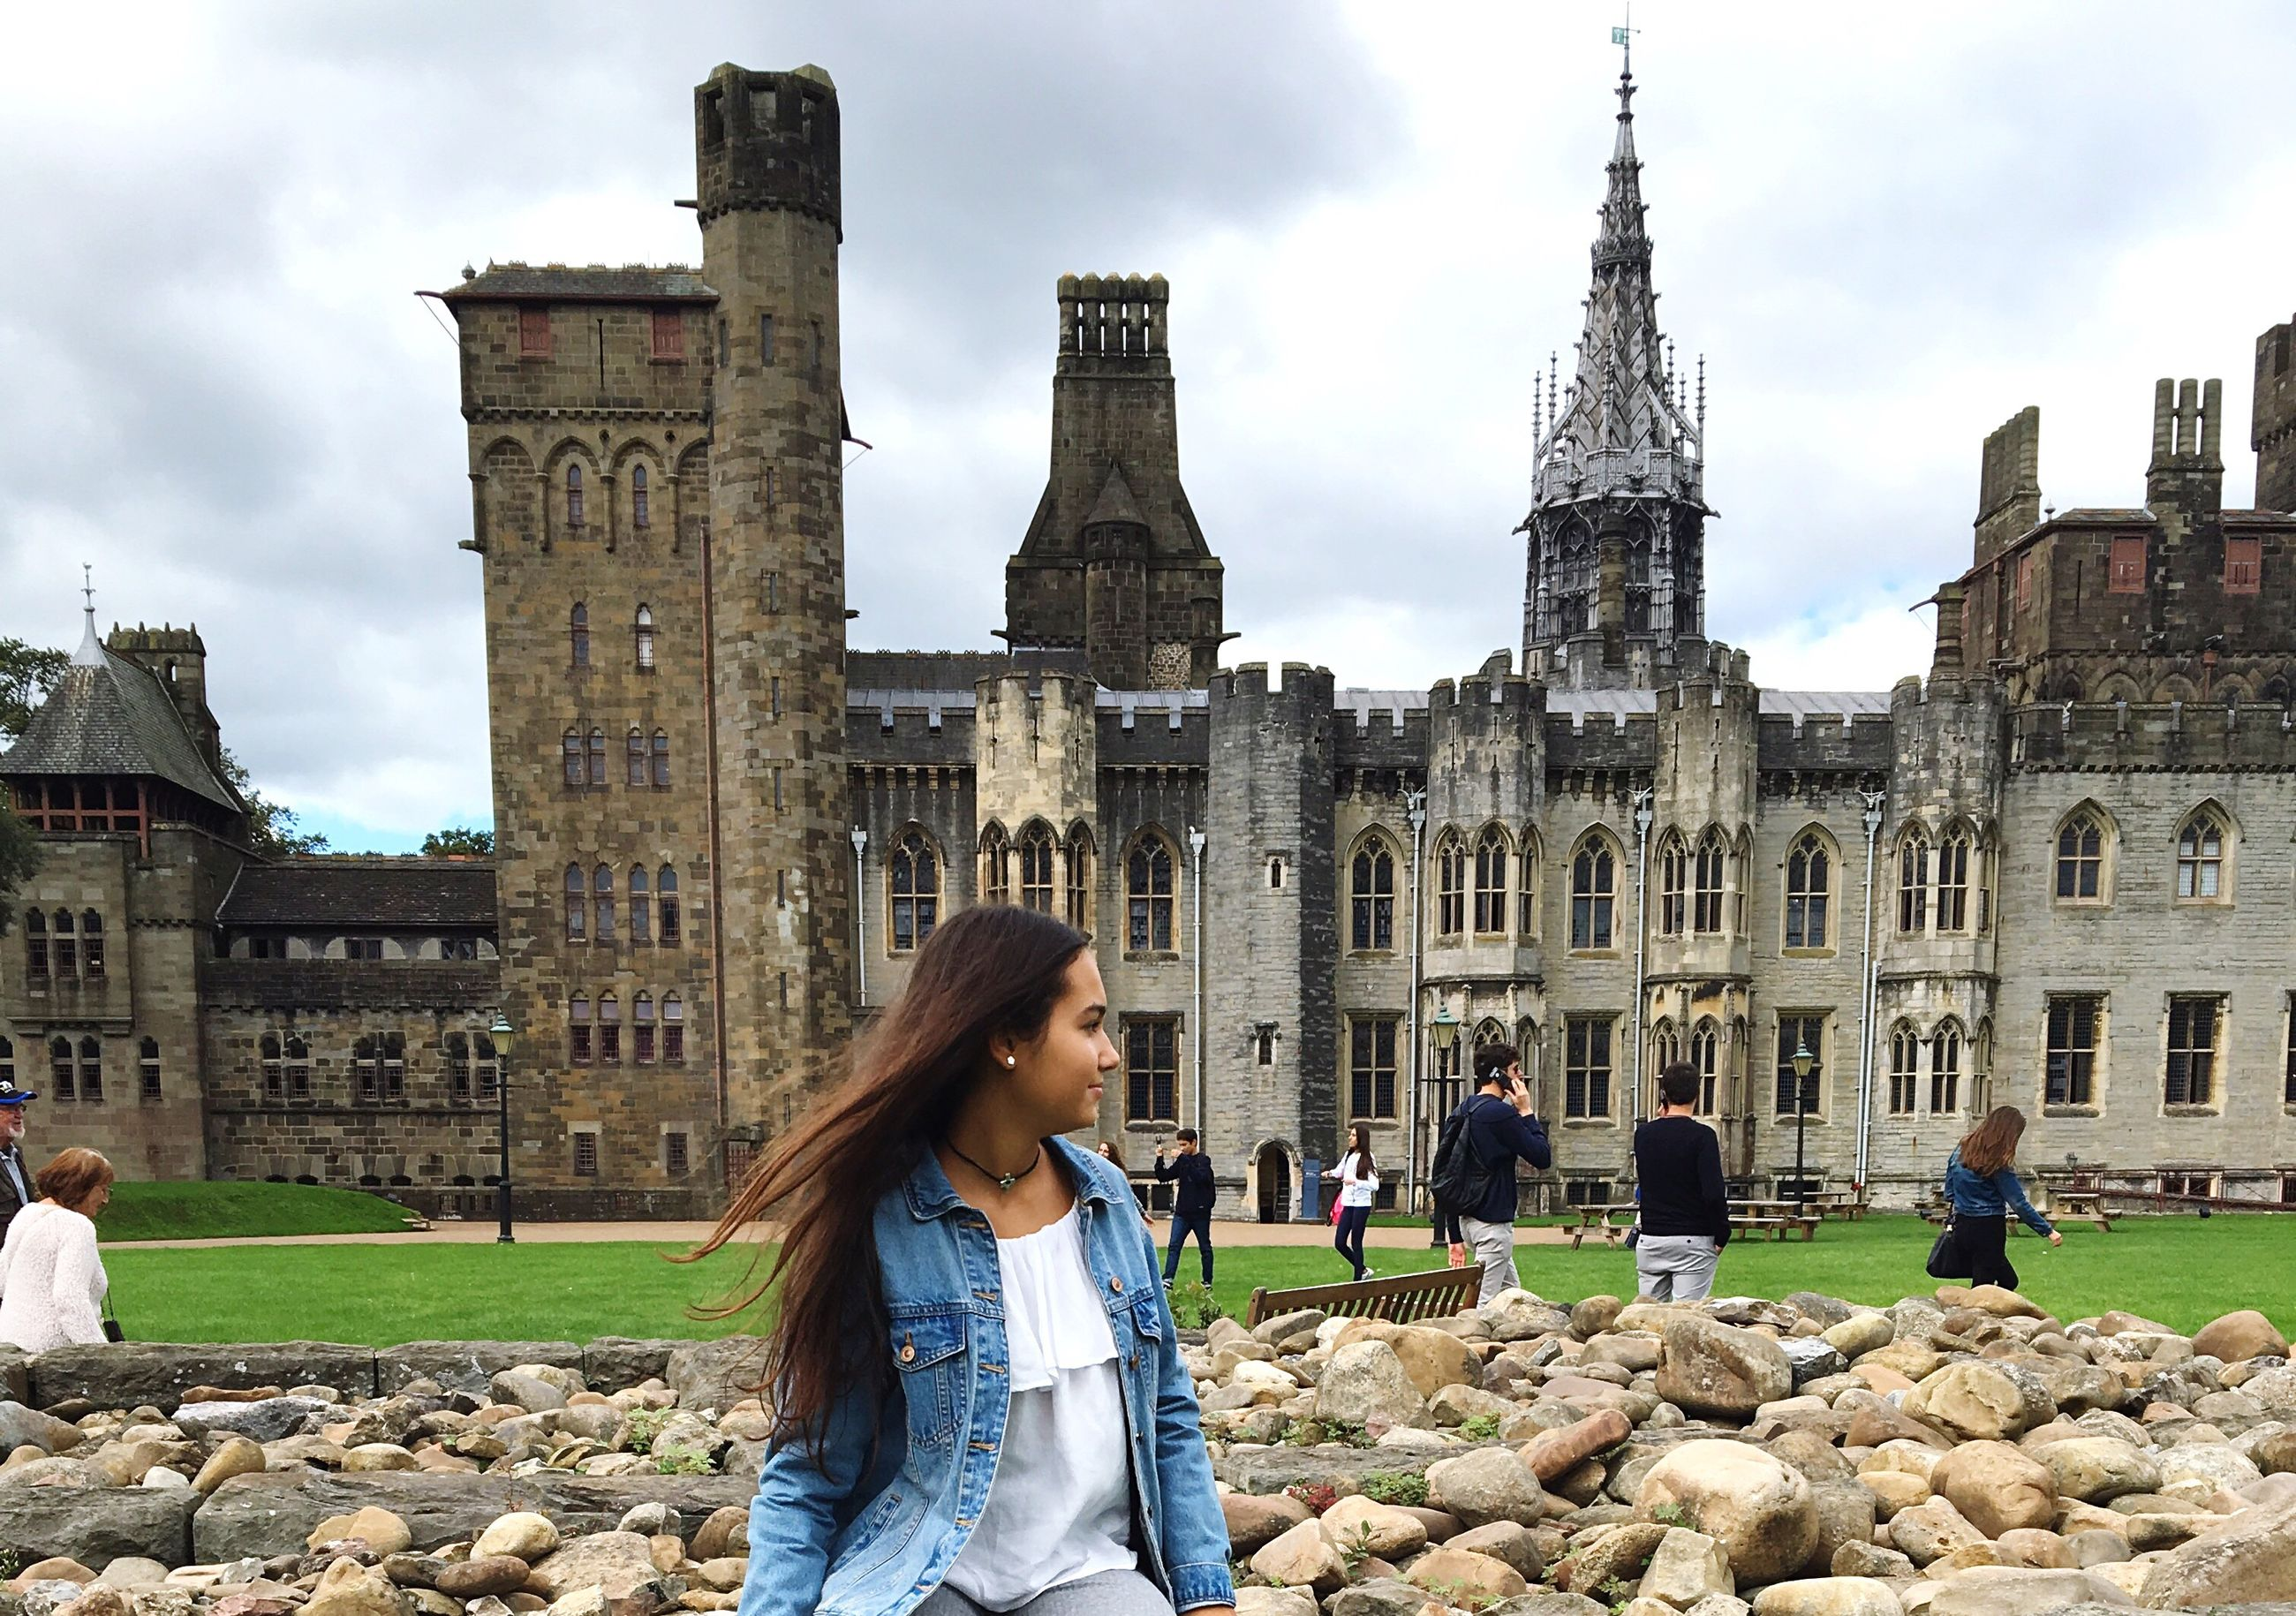 architecture, building exterior, built structure, in front of, side view, famous place, travel destinations, long hair, city, national landmark, cloud - sky, tourism, sky, casual clothing, outdoors, history, stone material, city life, day, gesturing, memories, the past, person